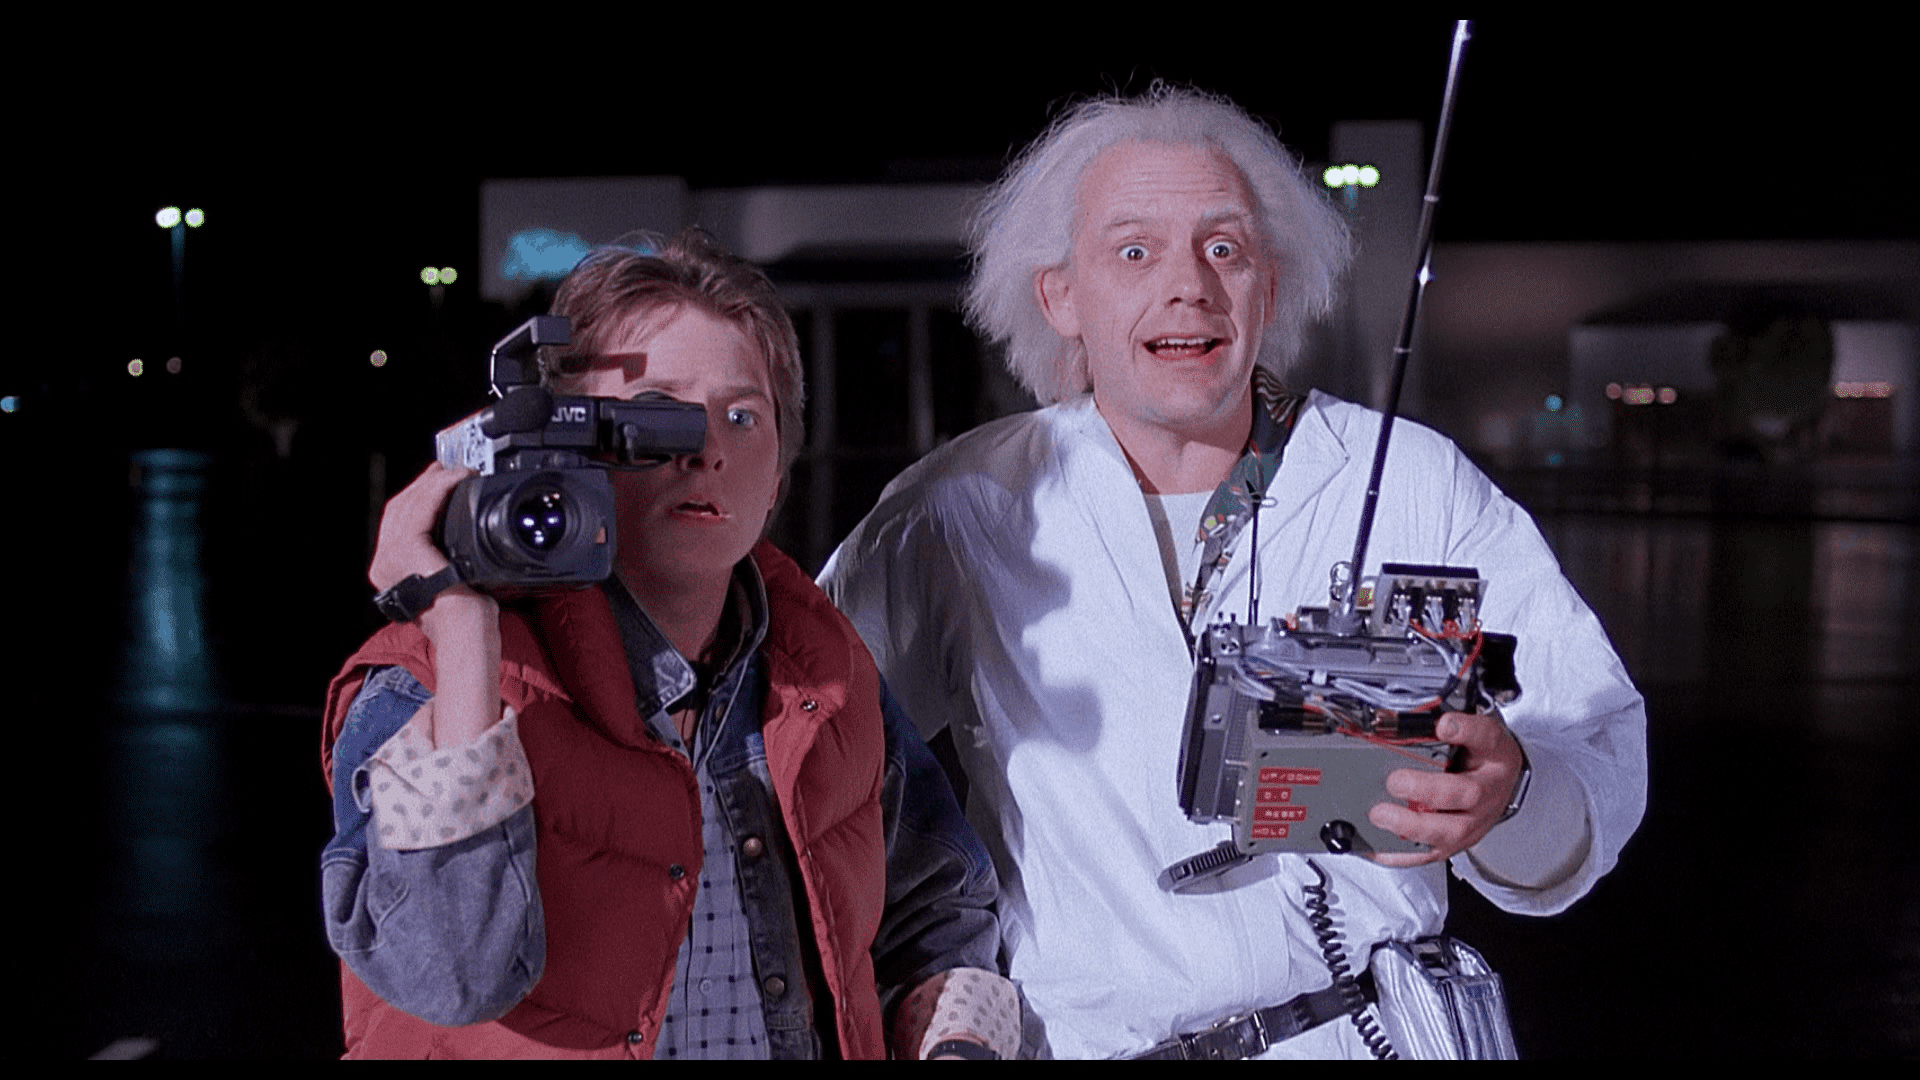 Back to the future (of Mobile Payments & Banking)